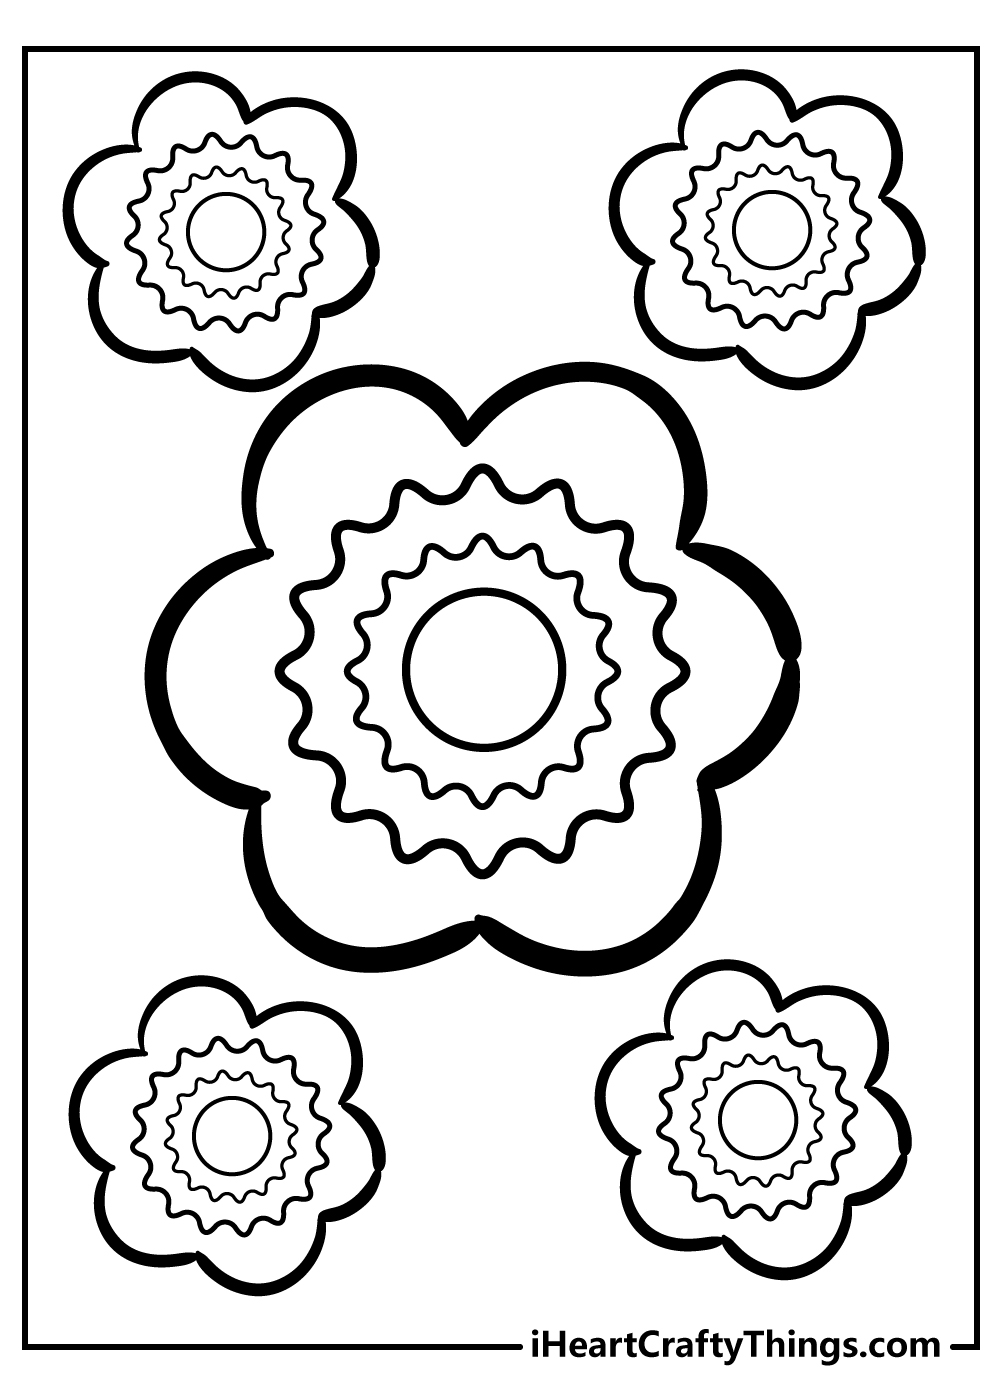 lovely simple flower images for kids to color